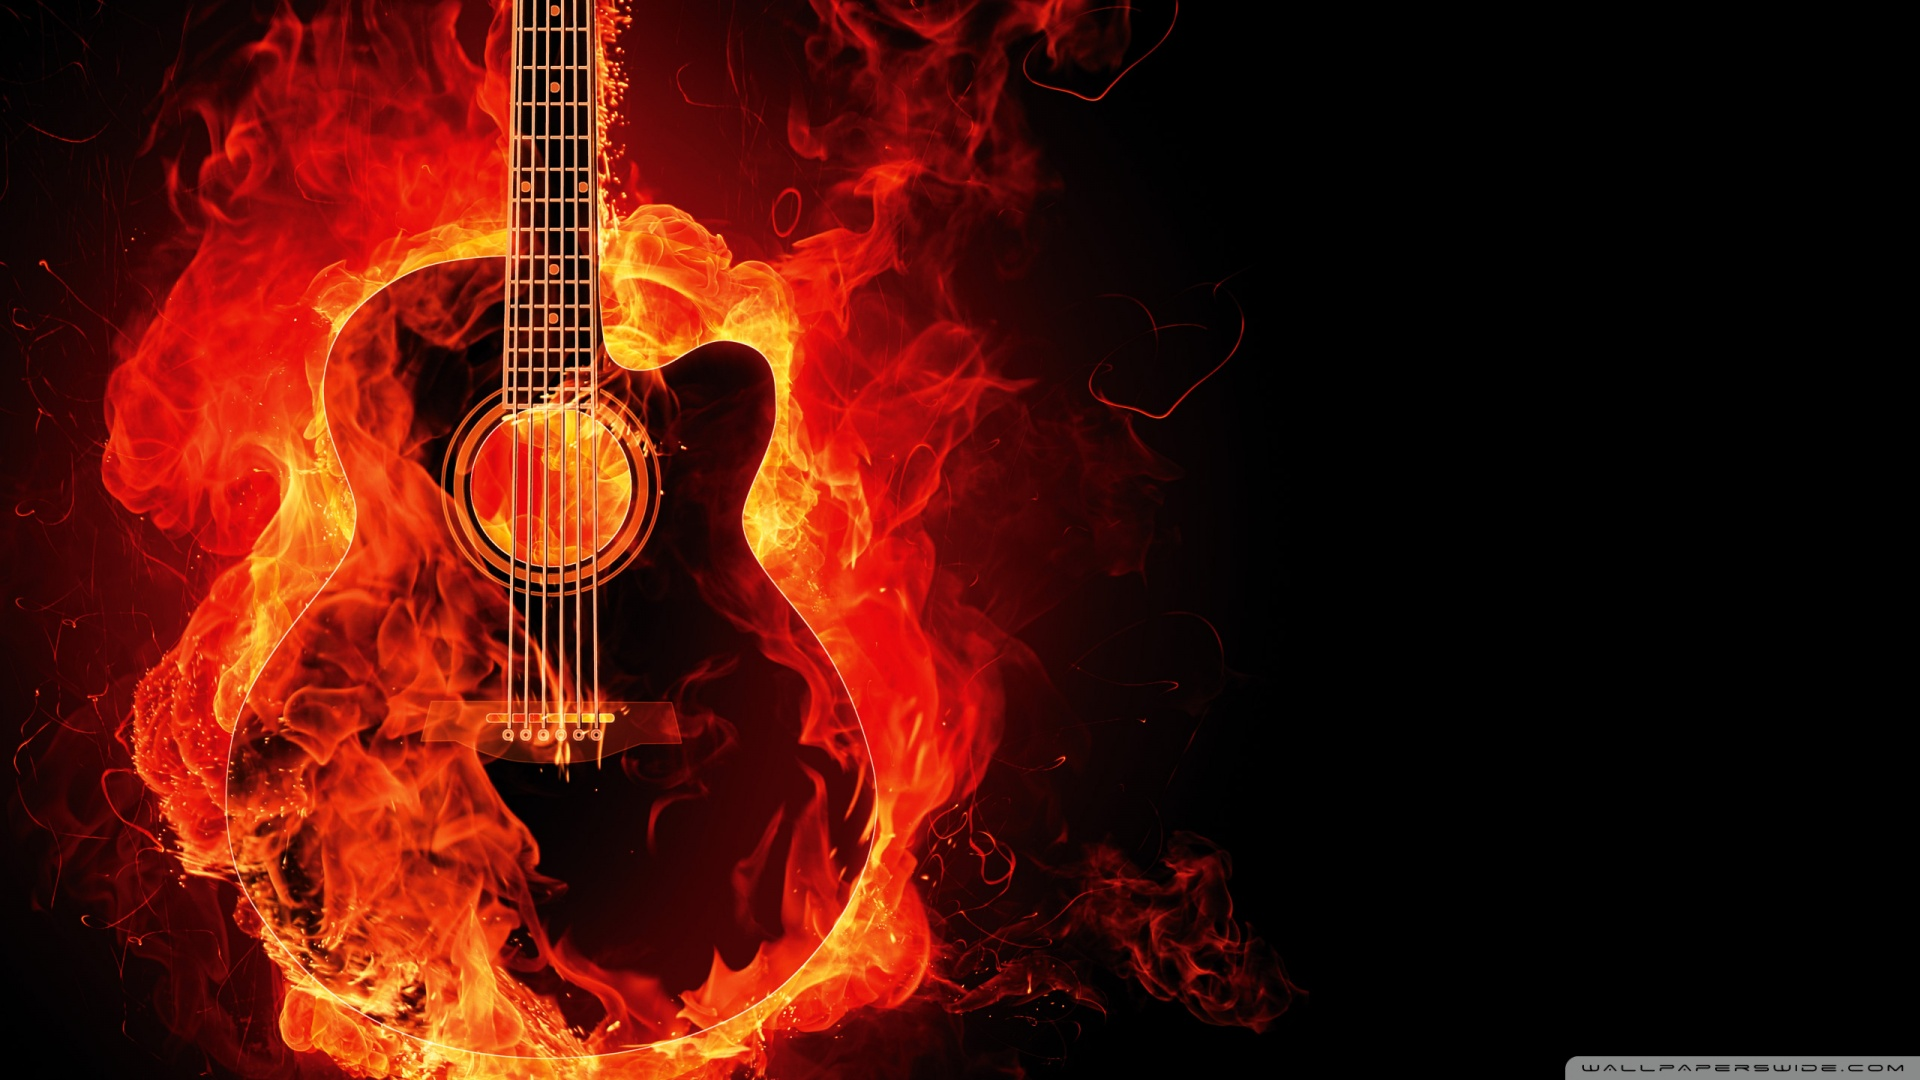 Guitar Wallpapers 1920x1080 Widescreen - WallpaperSafari